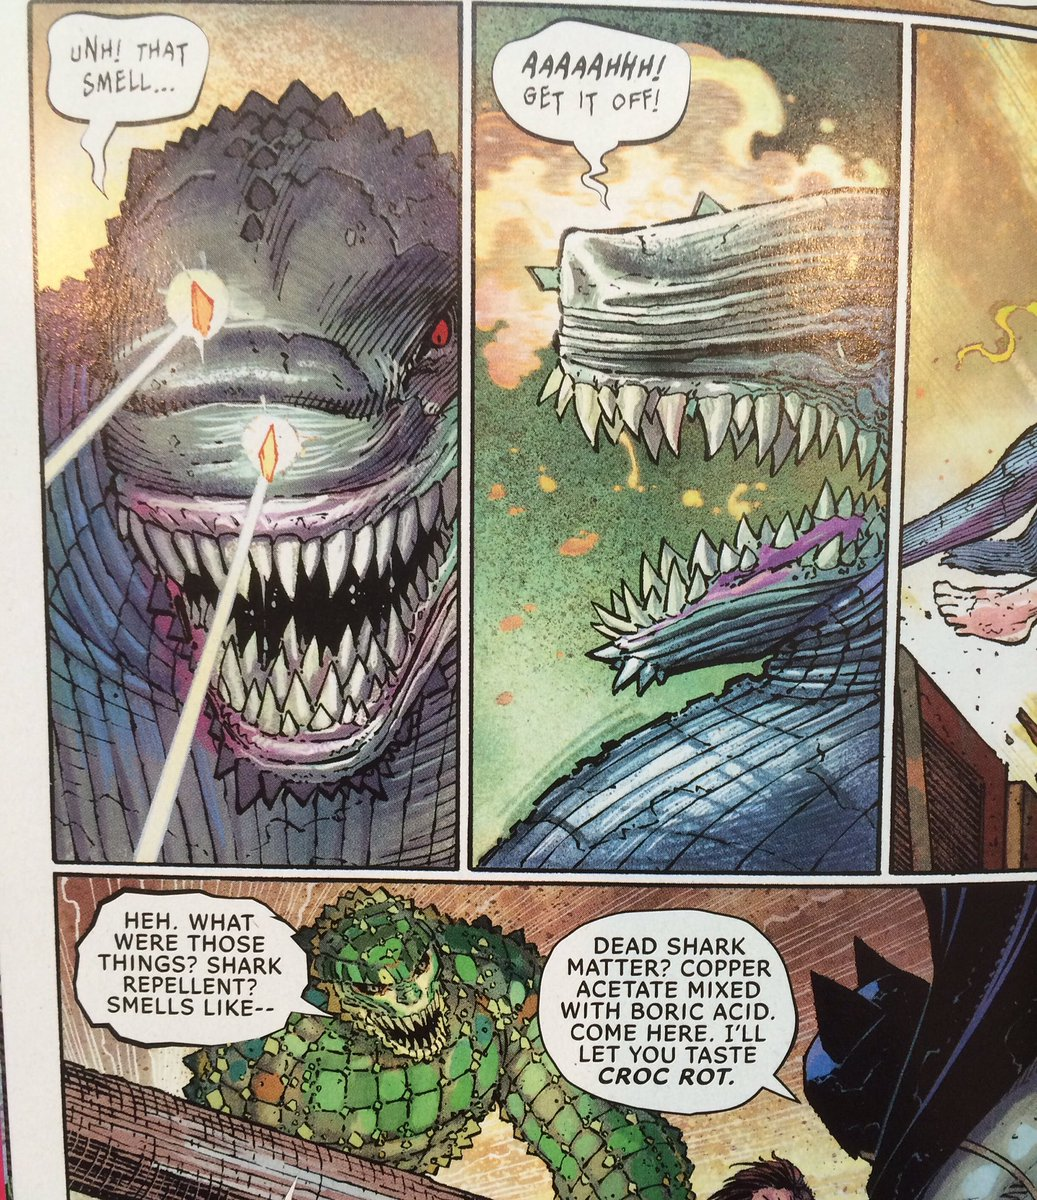 Strange Adventures On Twitter Dig This Folks Bat Shark Repellent Spray Is Now Canon Thanks To Ssnyder1835 All Star Batman Newcomicbookday